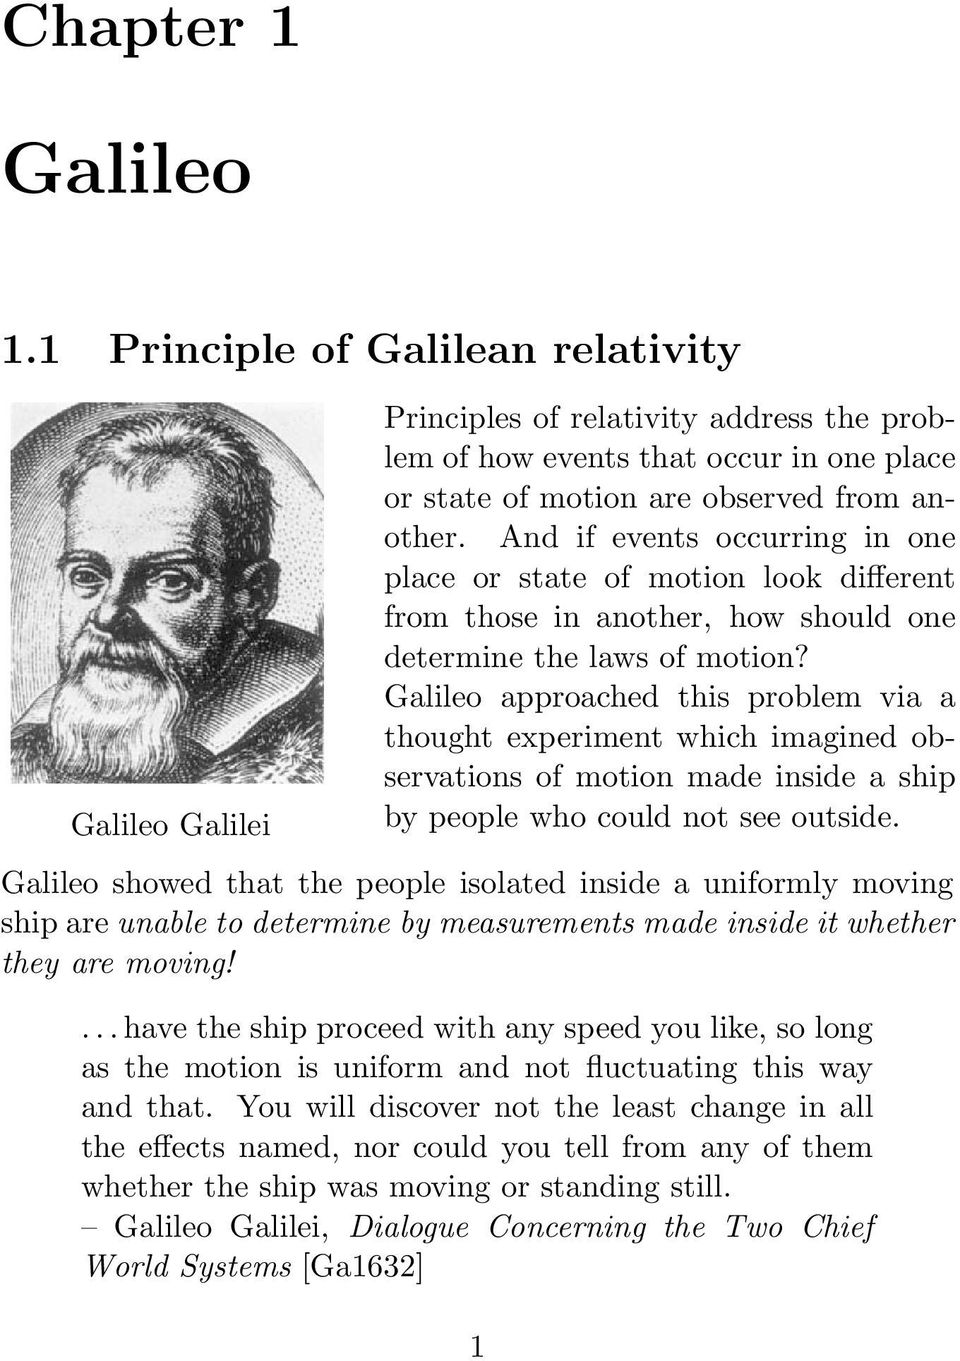 Galileo approached this problem via a thought experiment which imagined observations of motion made inside a ship by people who could not see outside.